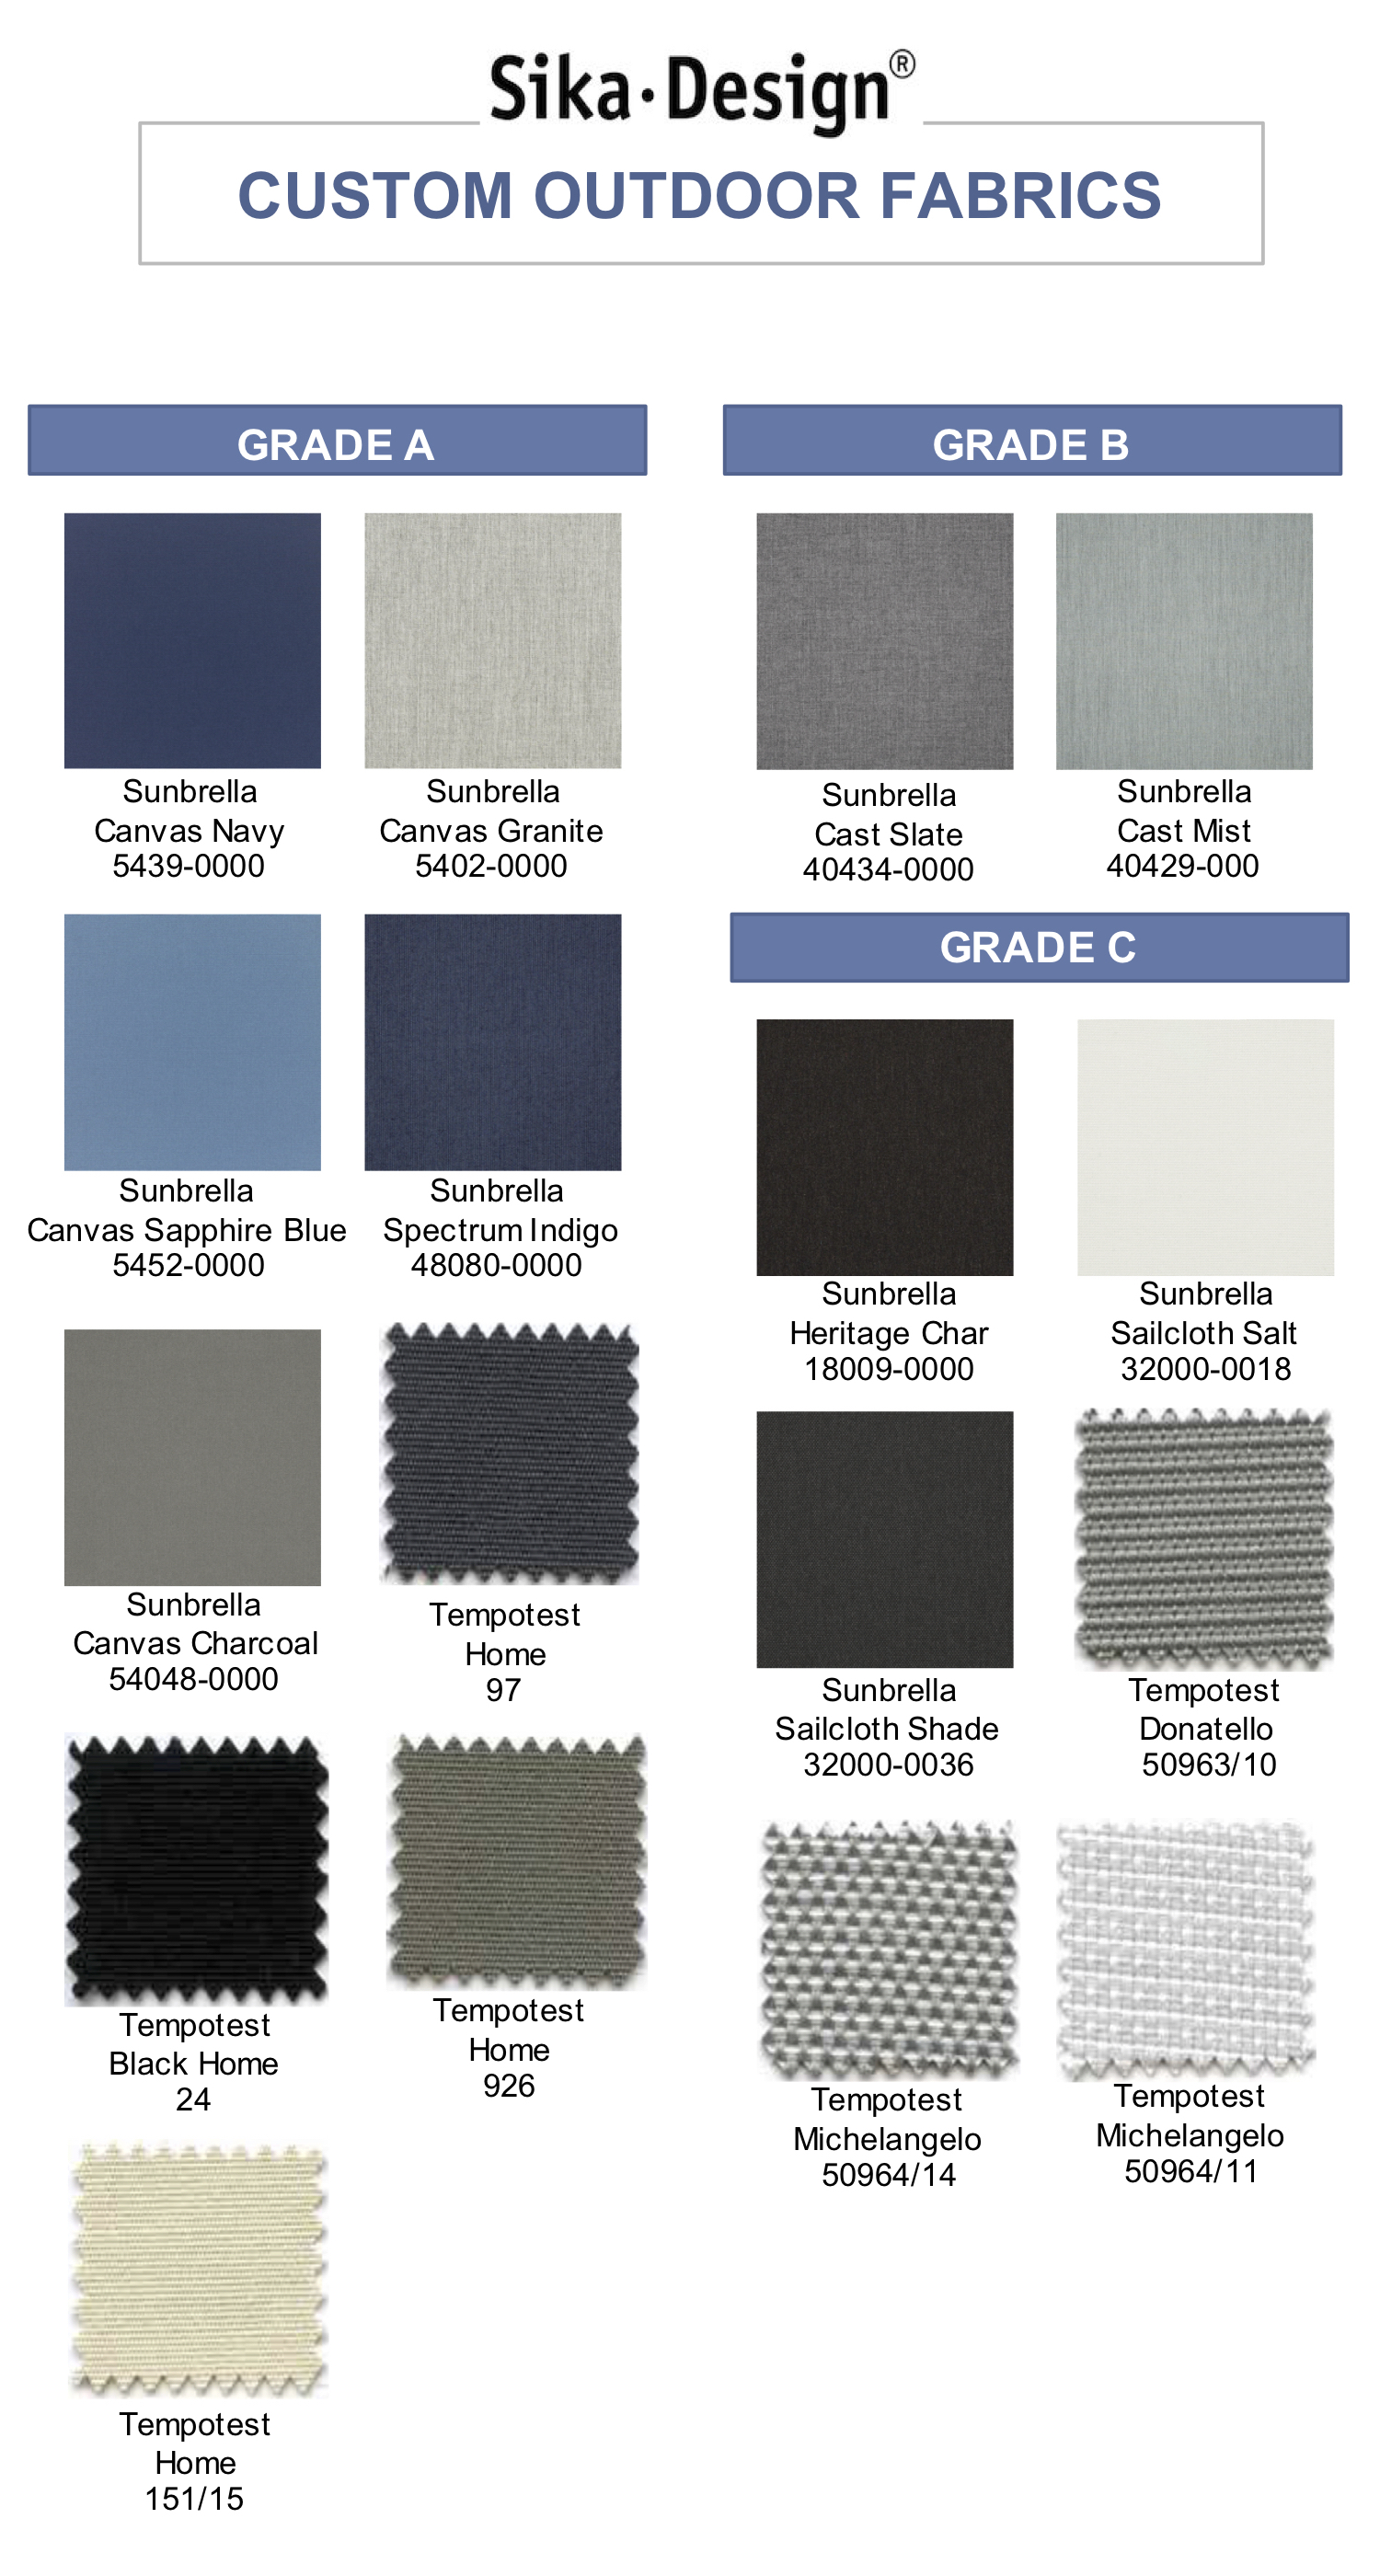 Sika Design Custom Outdoor Fabrics